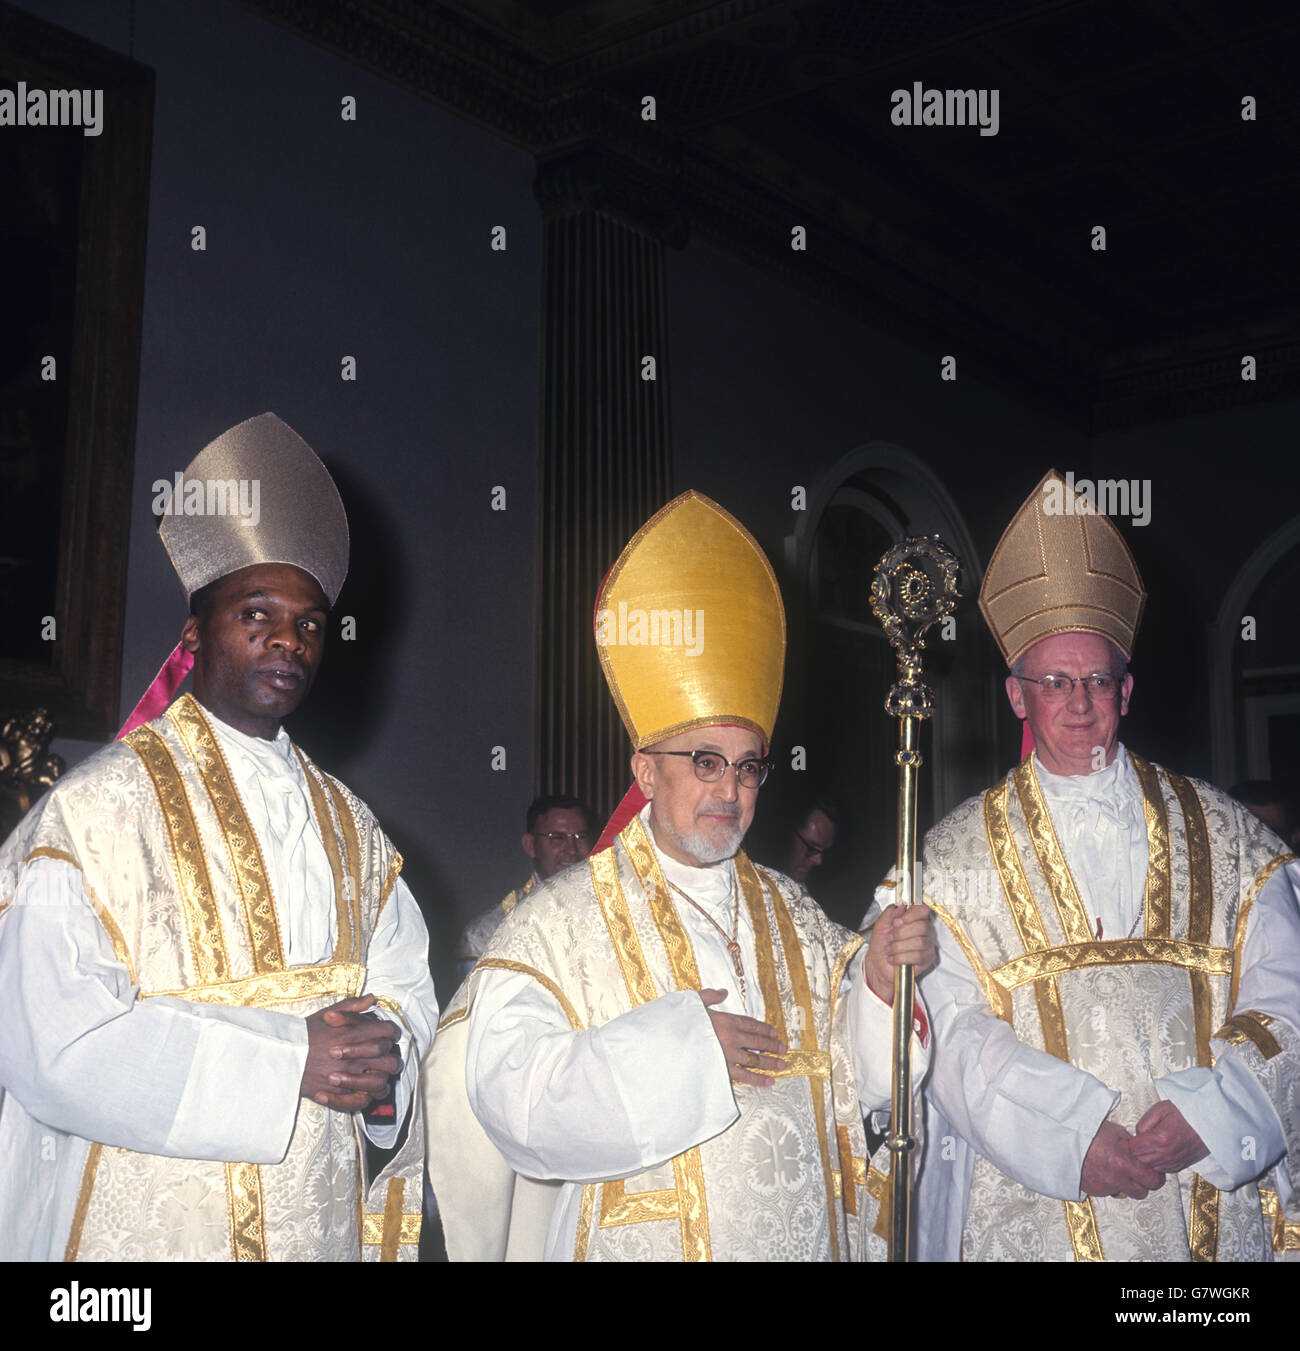 Religion - Three Cardinals Concelebrate Mass - Westminster Cathedral, London - Stock Image